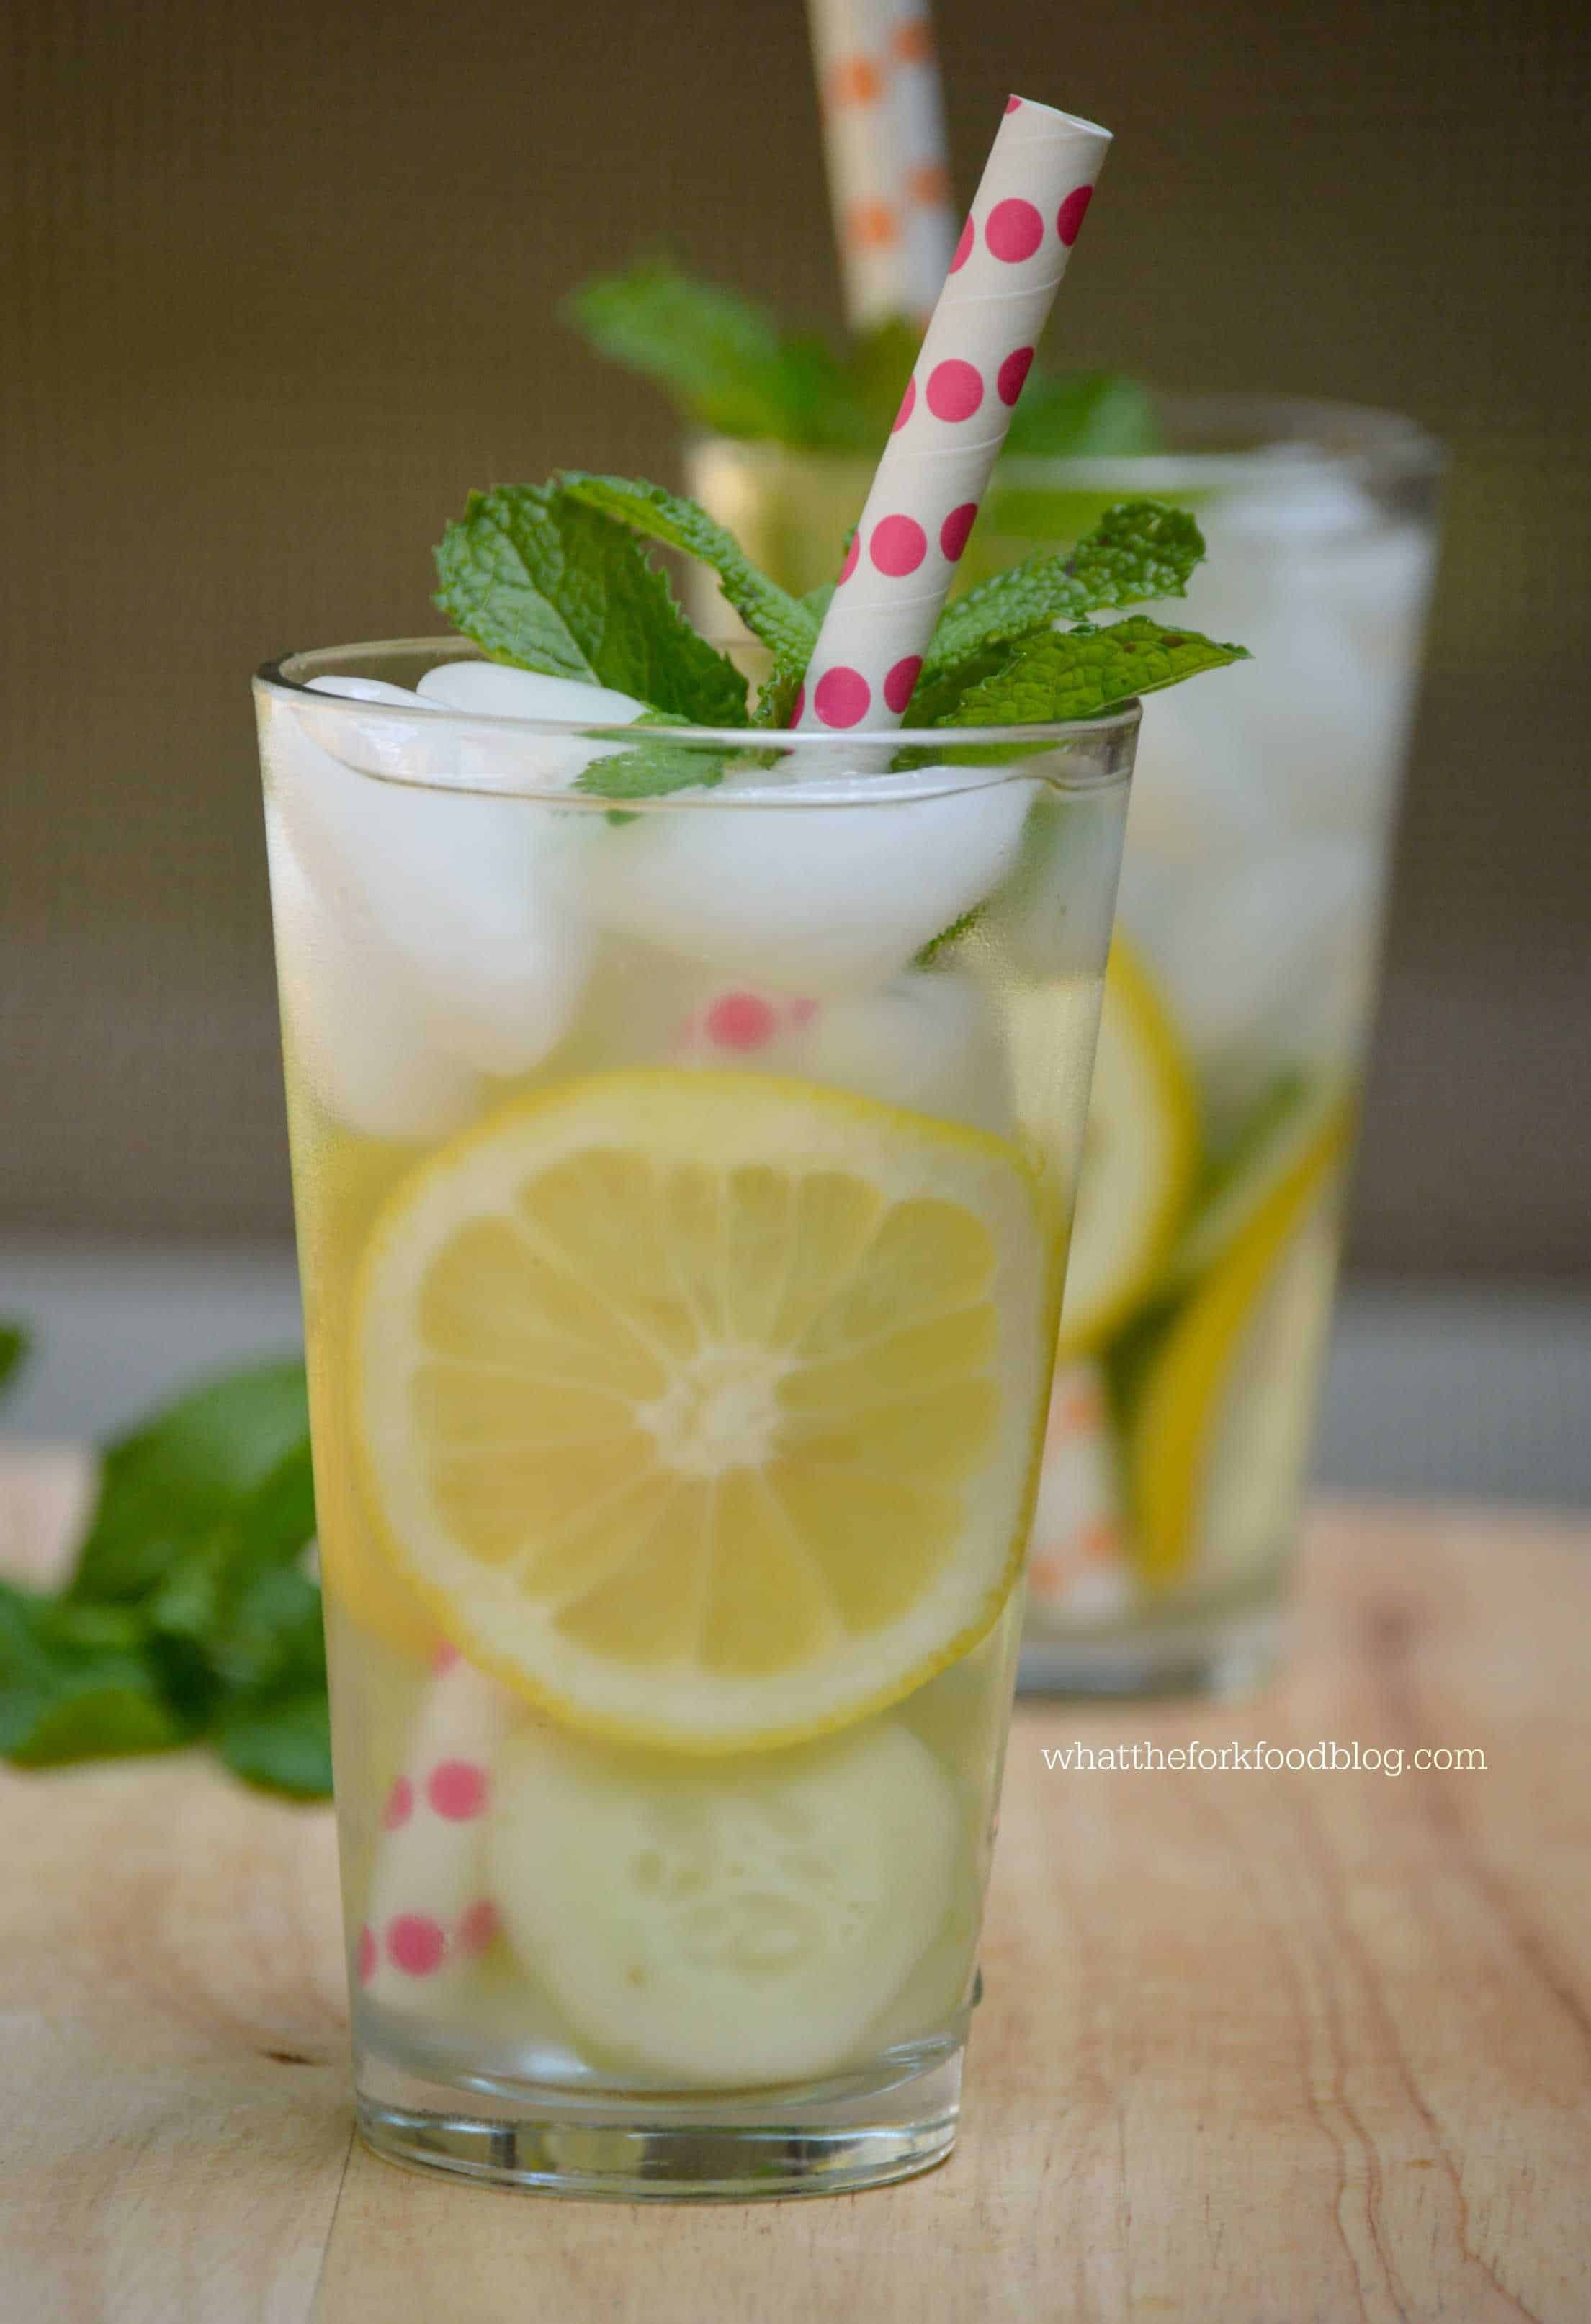 Cucumber, Lemon and Mint Infused Water from What The Fork Food Blog